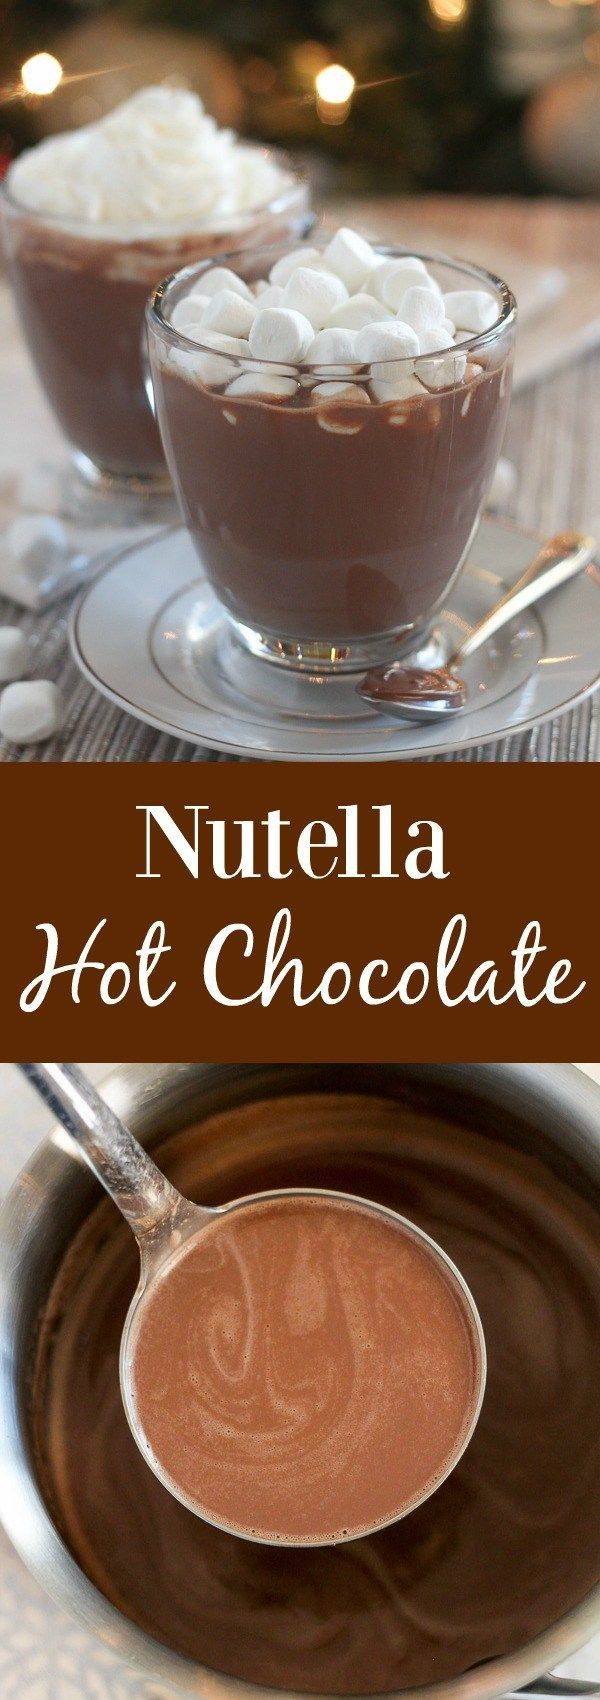 Nutella Hot Chocolate - Quick and easy chocolate and hazelnut flavored Nutella Hot Chocolate. Perfect for chilly days!